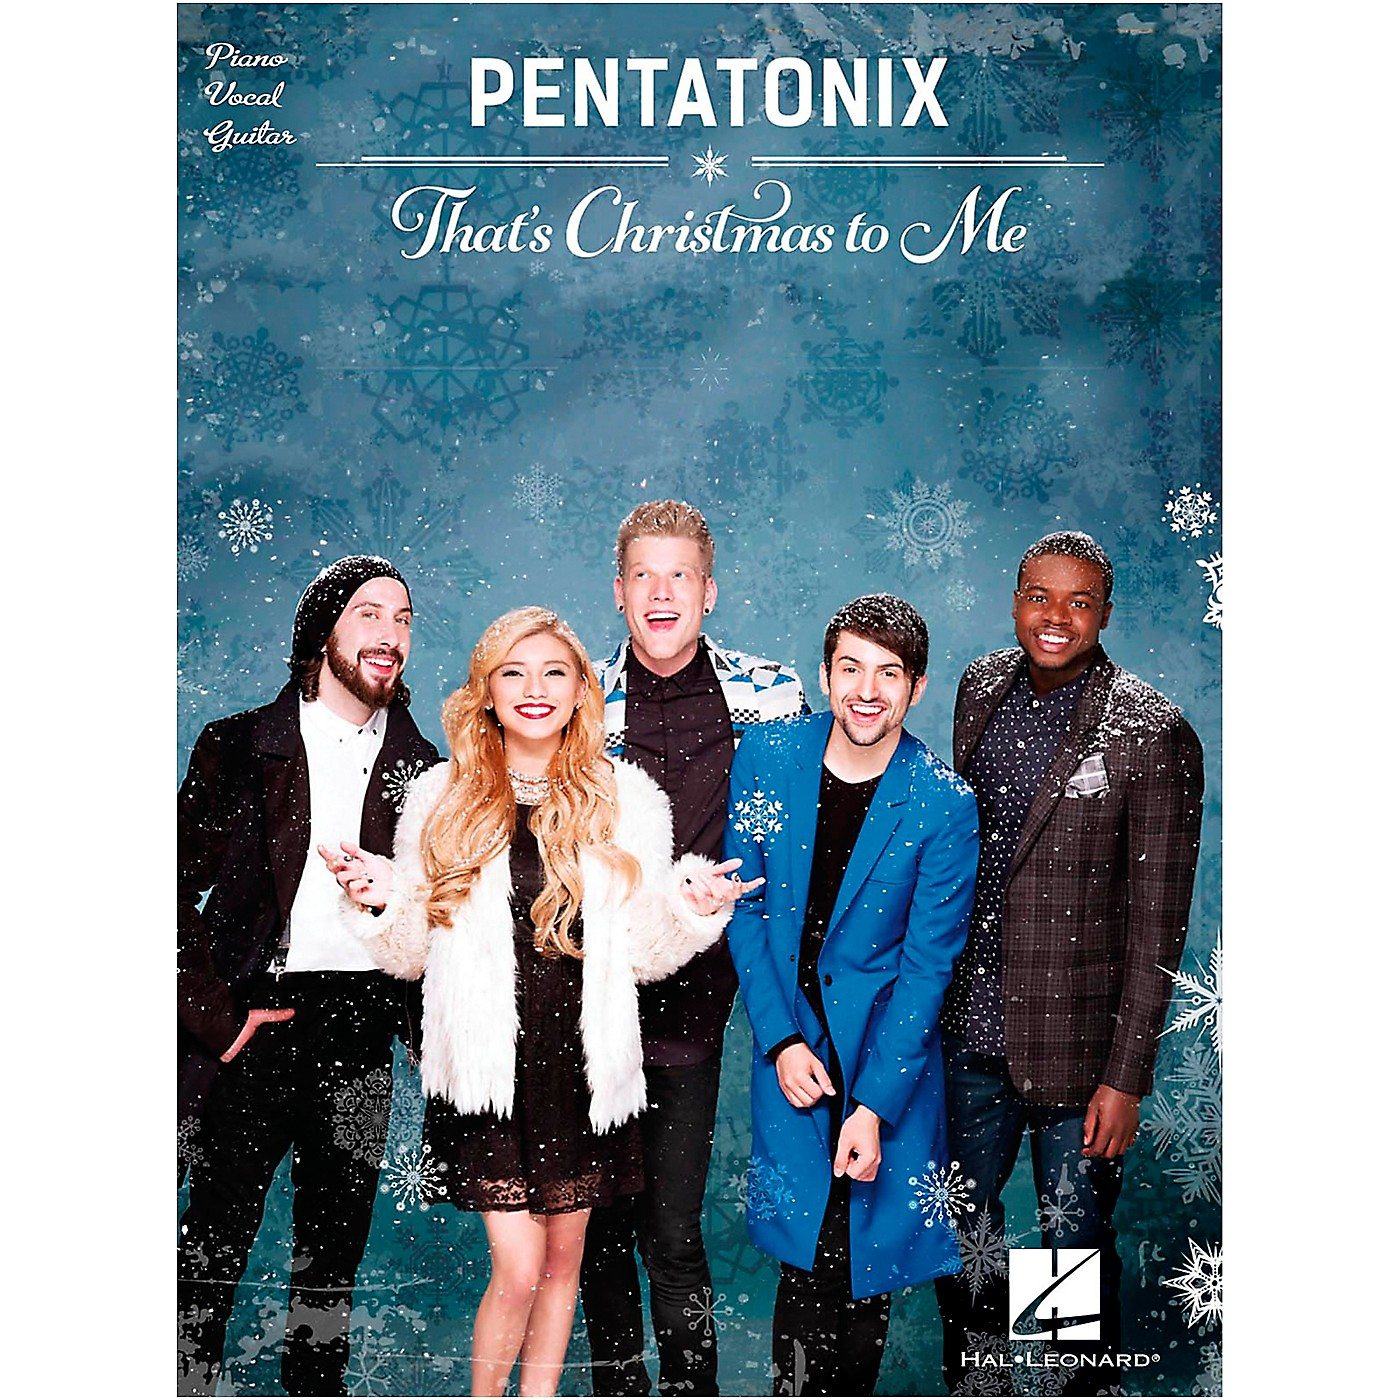 Hal Leonard Pentatonix - That's Christmas to Me Piano/Vocal/Guitar Songbook thumbnail